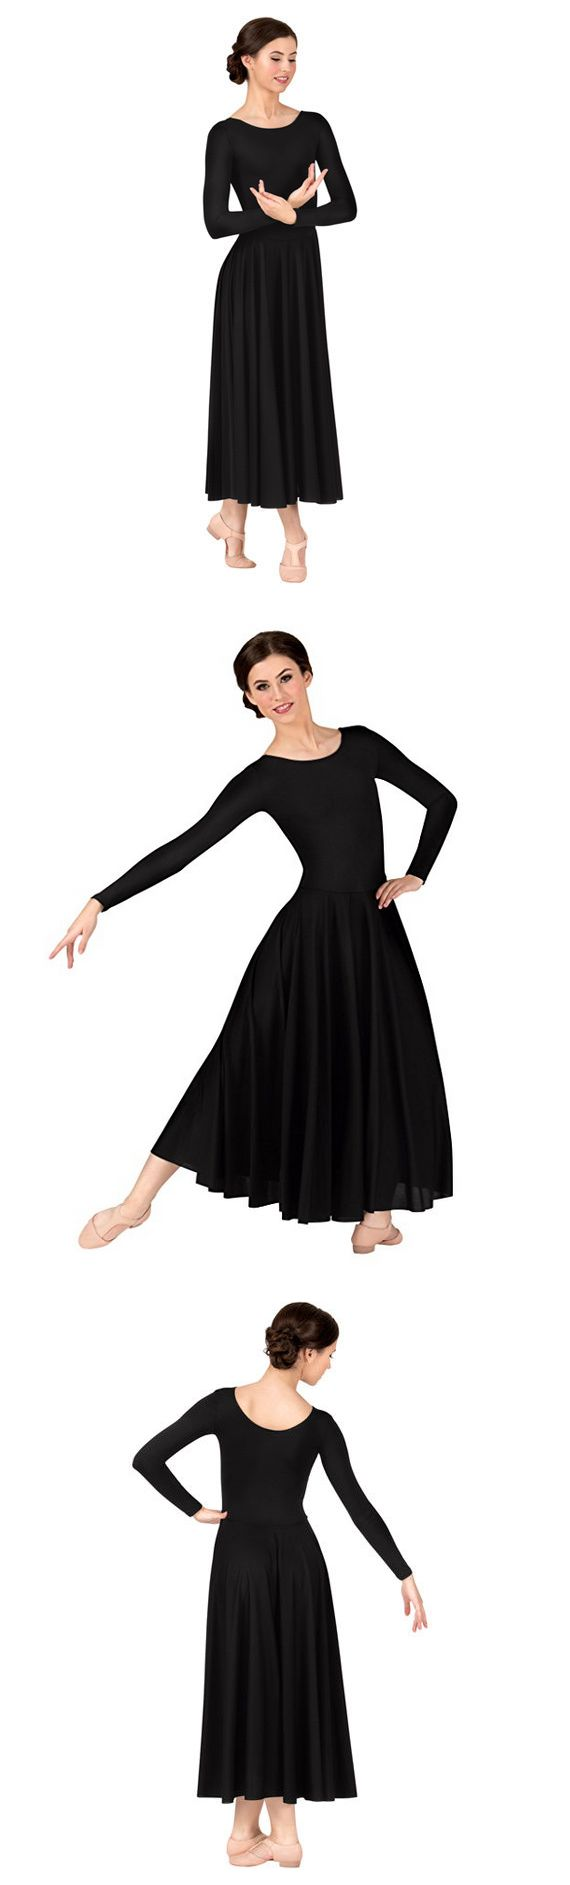 Other Adult Dancewear 112428: Body Wrappers S Small Black Long Dress Ballet Adult Womens Worship Dance 512 -> BUY IT NOW ONLY: $34.99 on eBay!